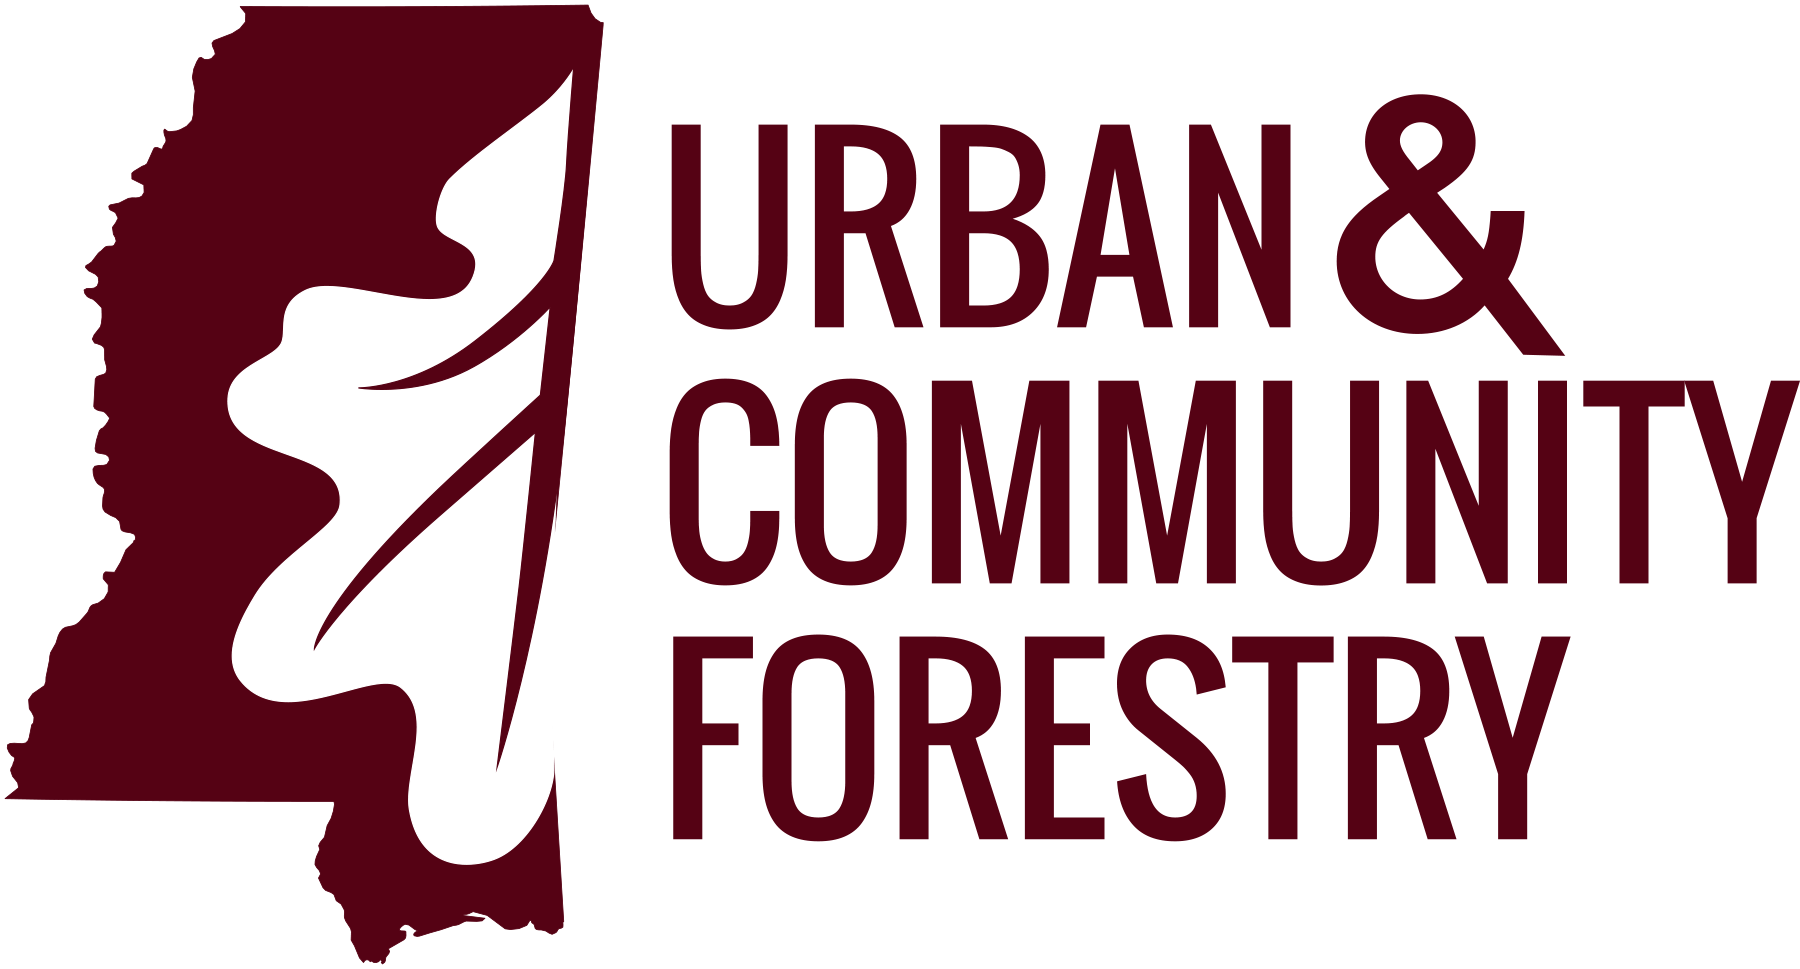 Mr clipart ms foundation. Urban and community forestry